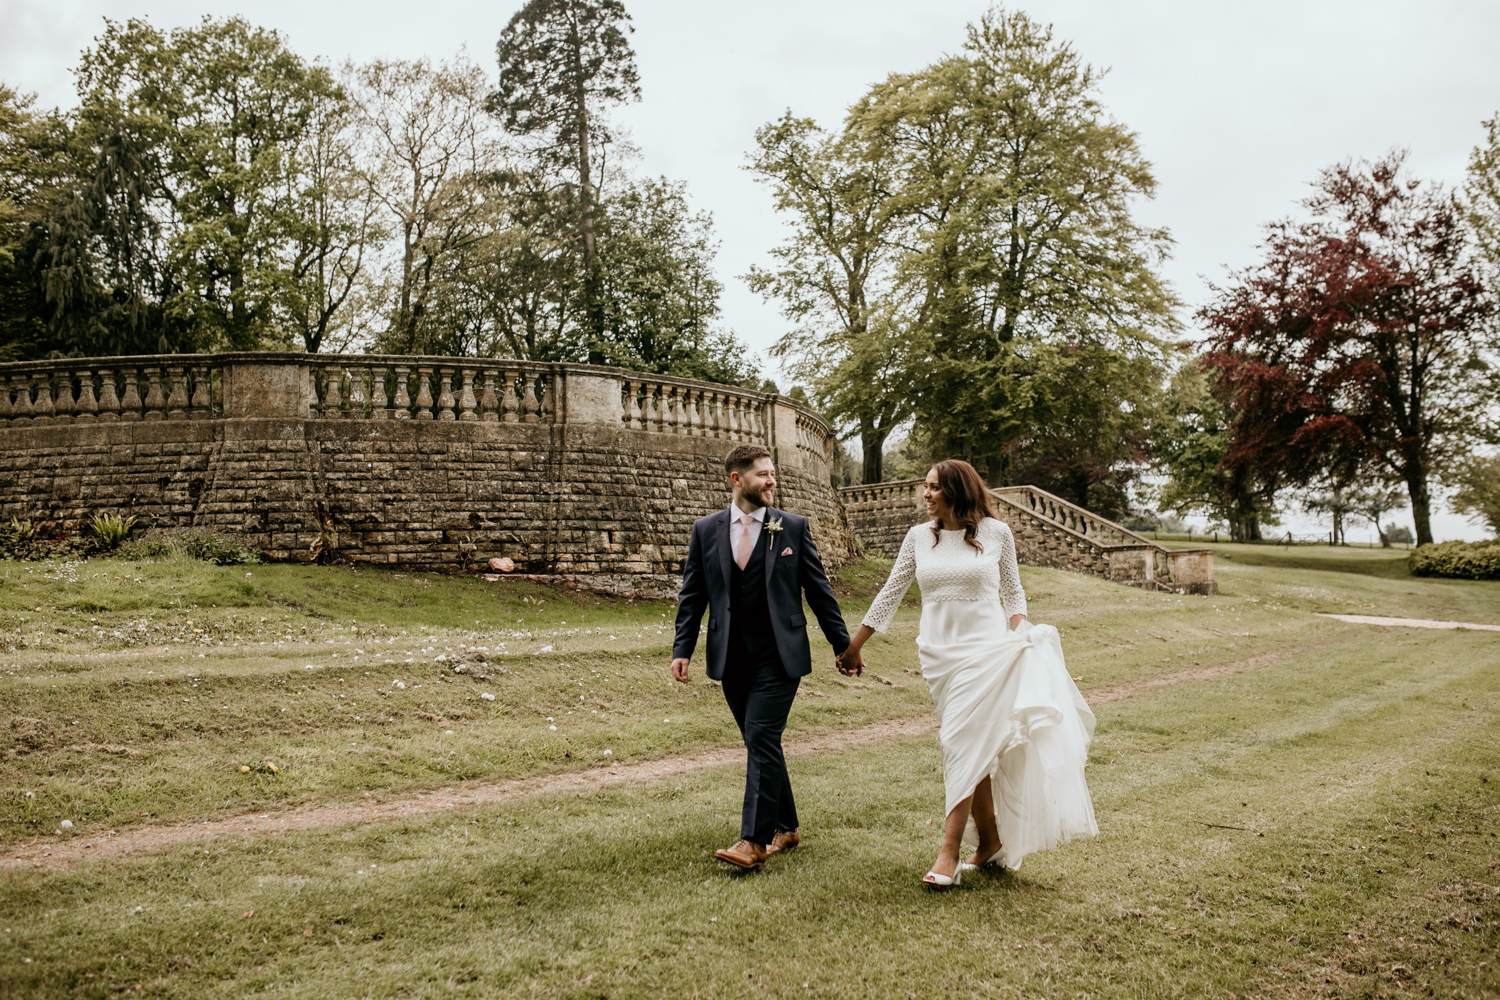 bride and groom walking during their wedding portraits at Coombe Lodge Blagdon wedding venue